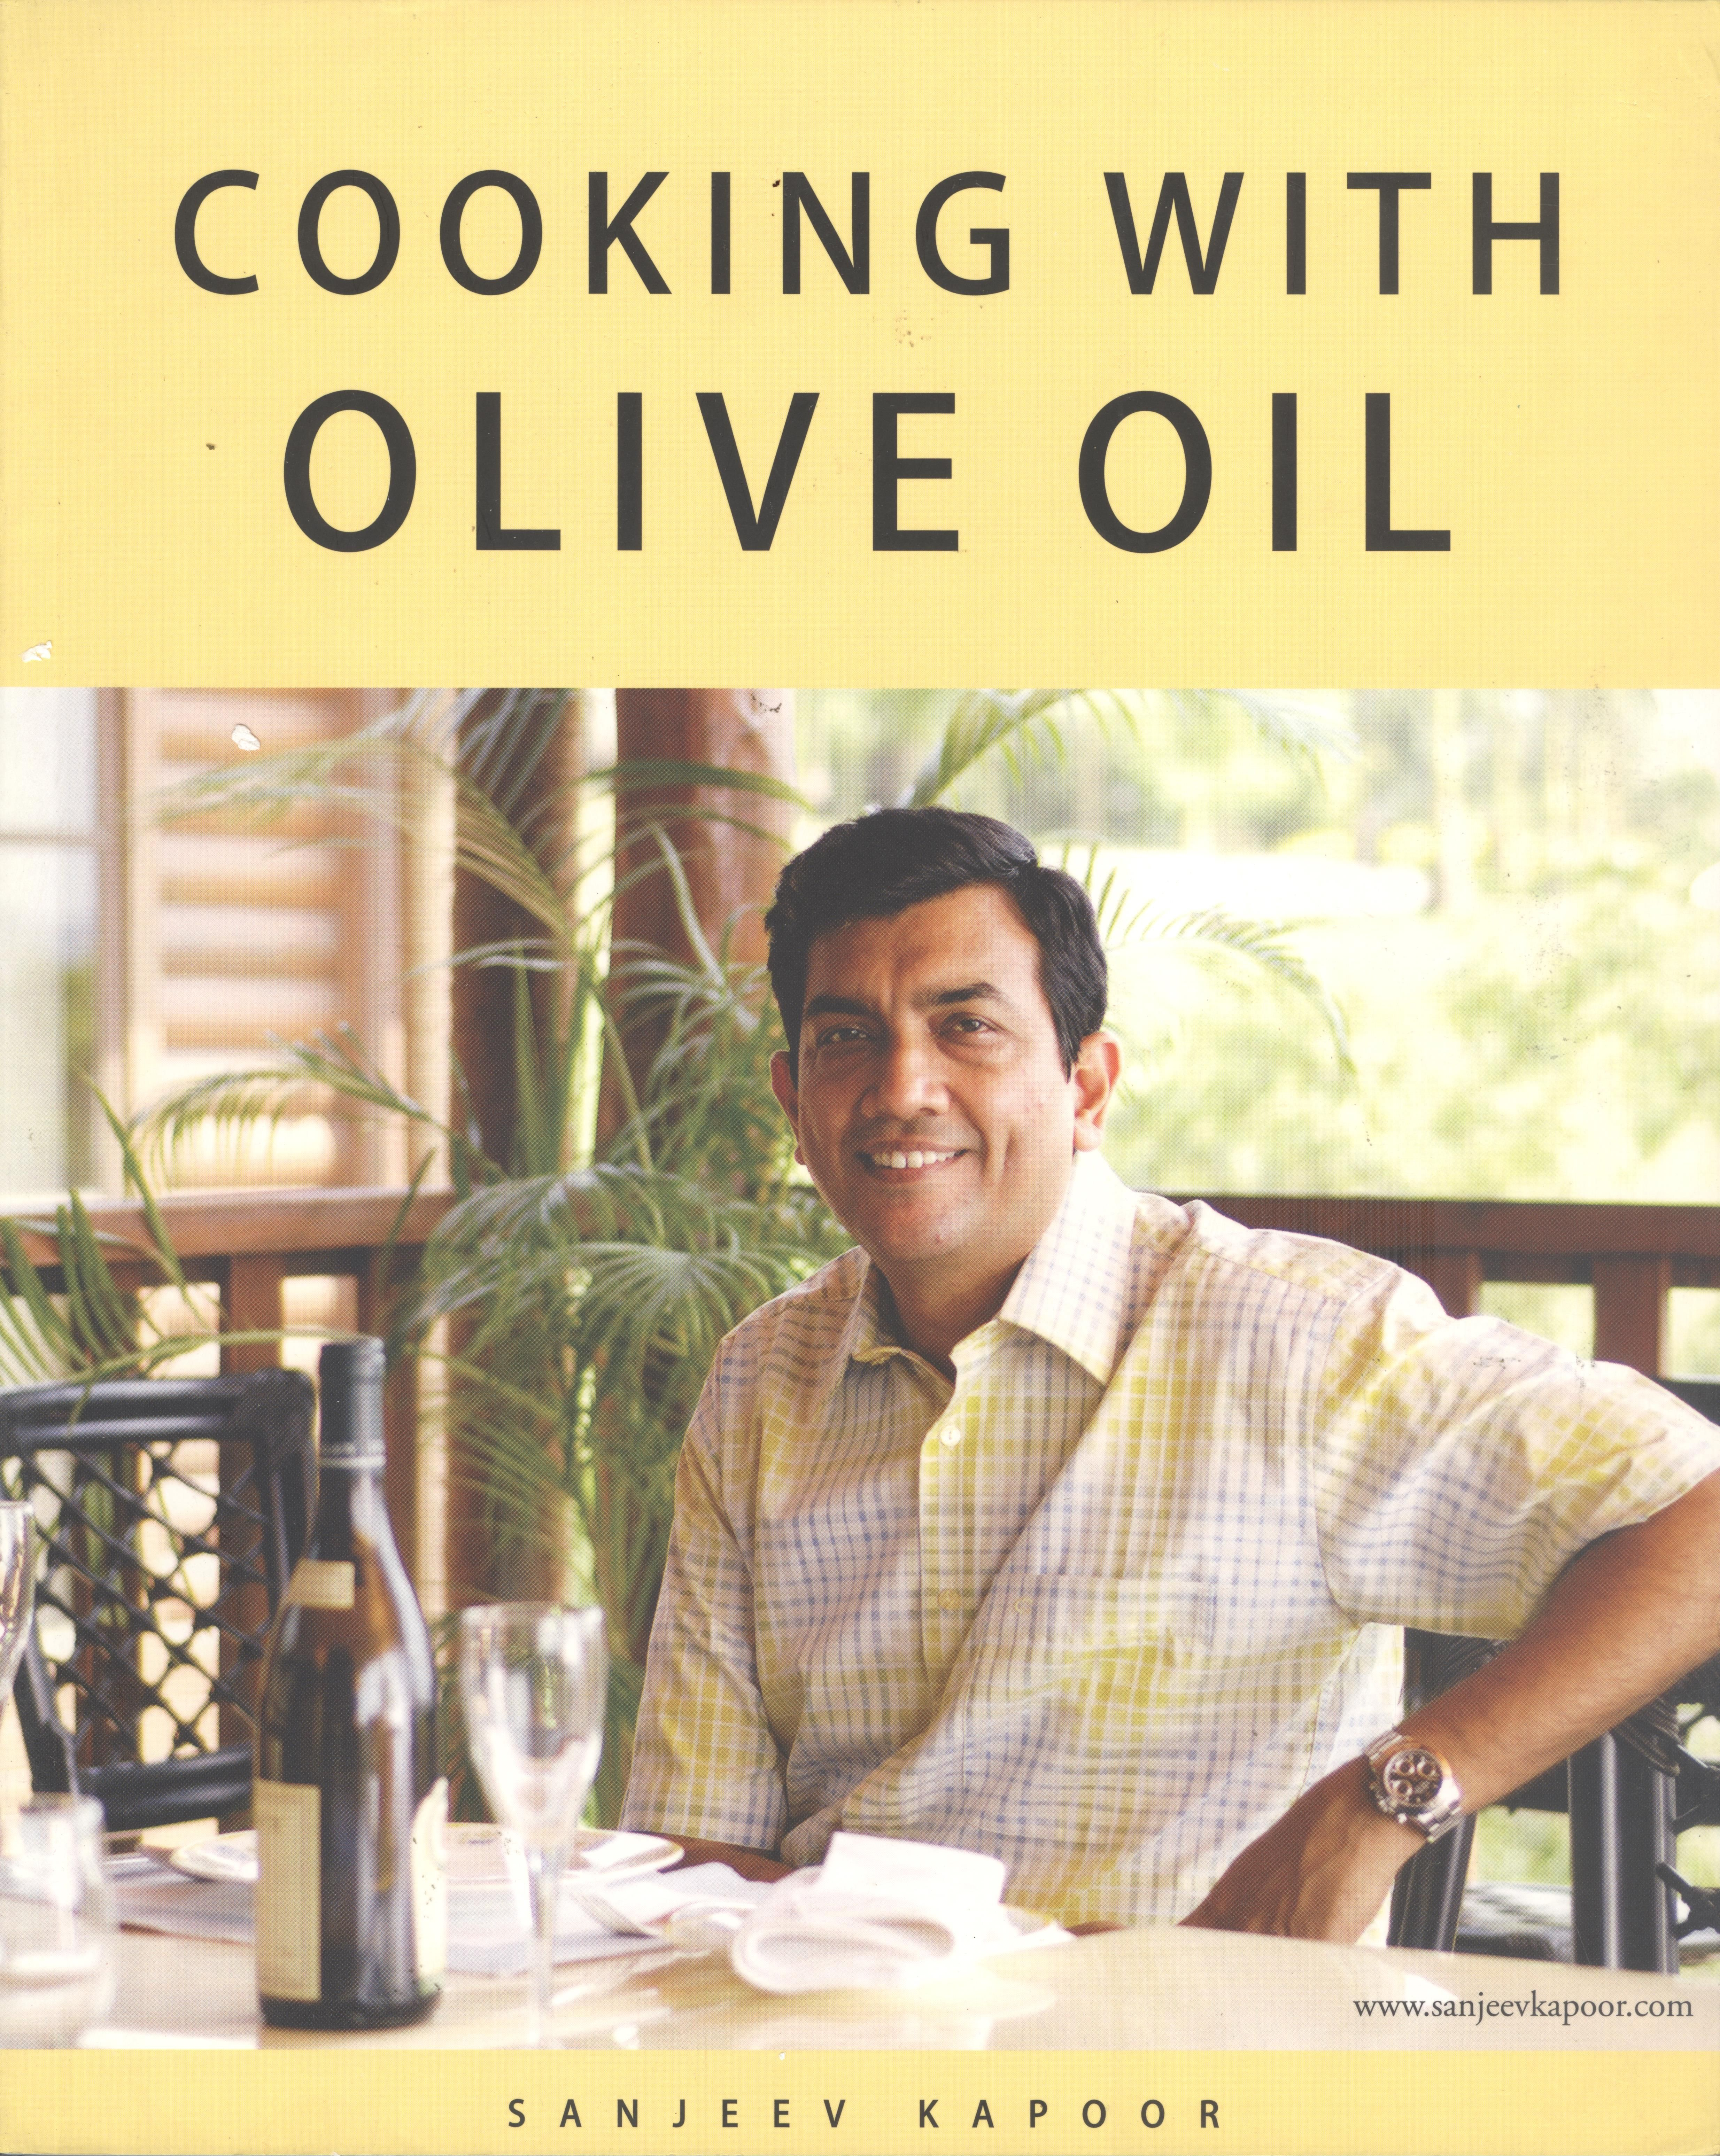 This book is an attempt to bring olive oil healthiest